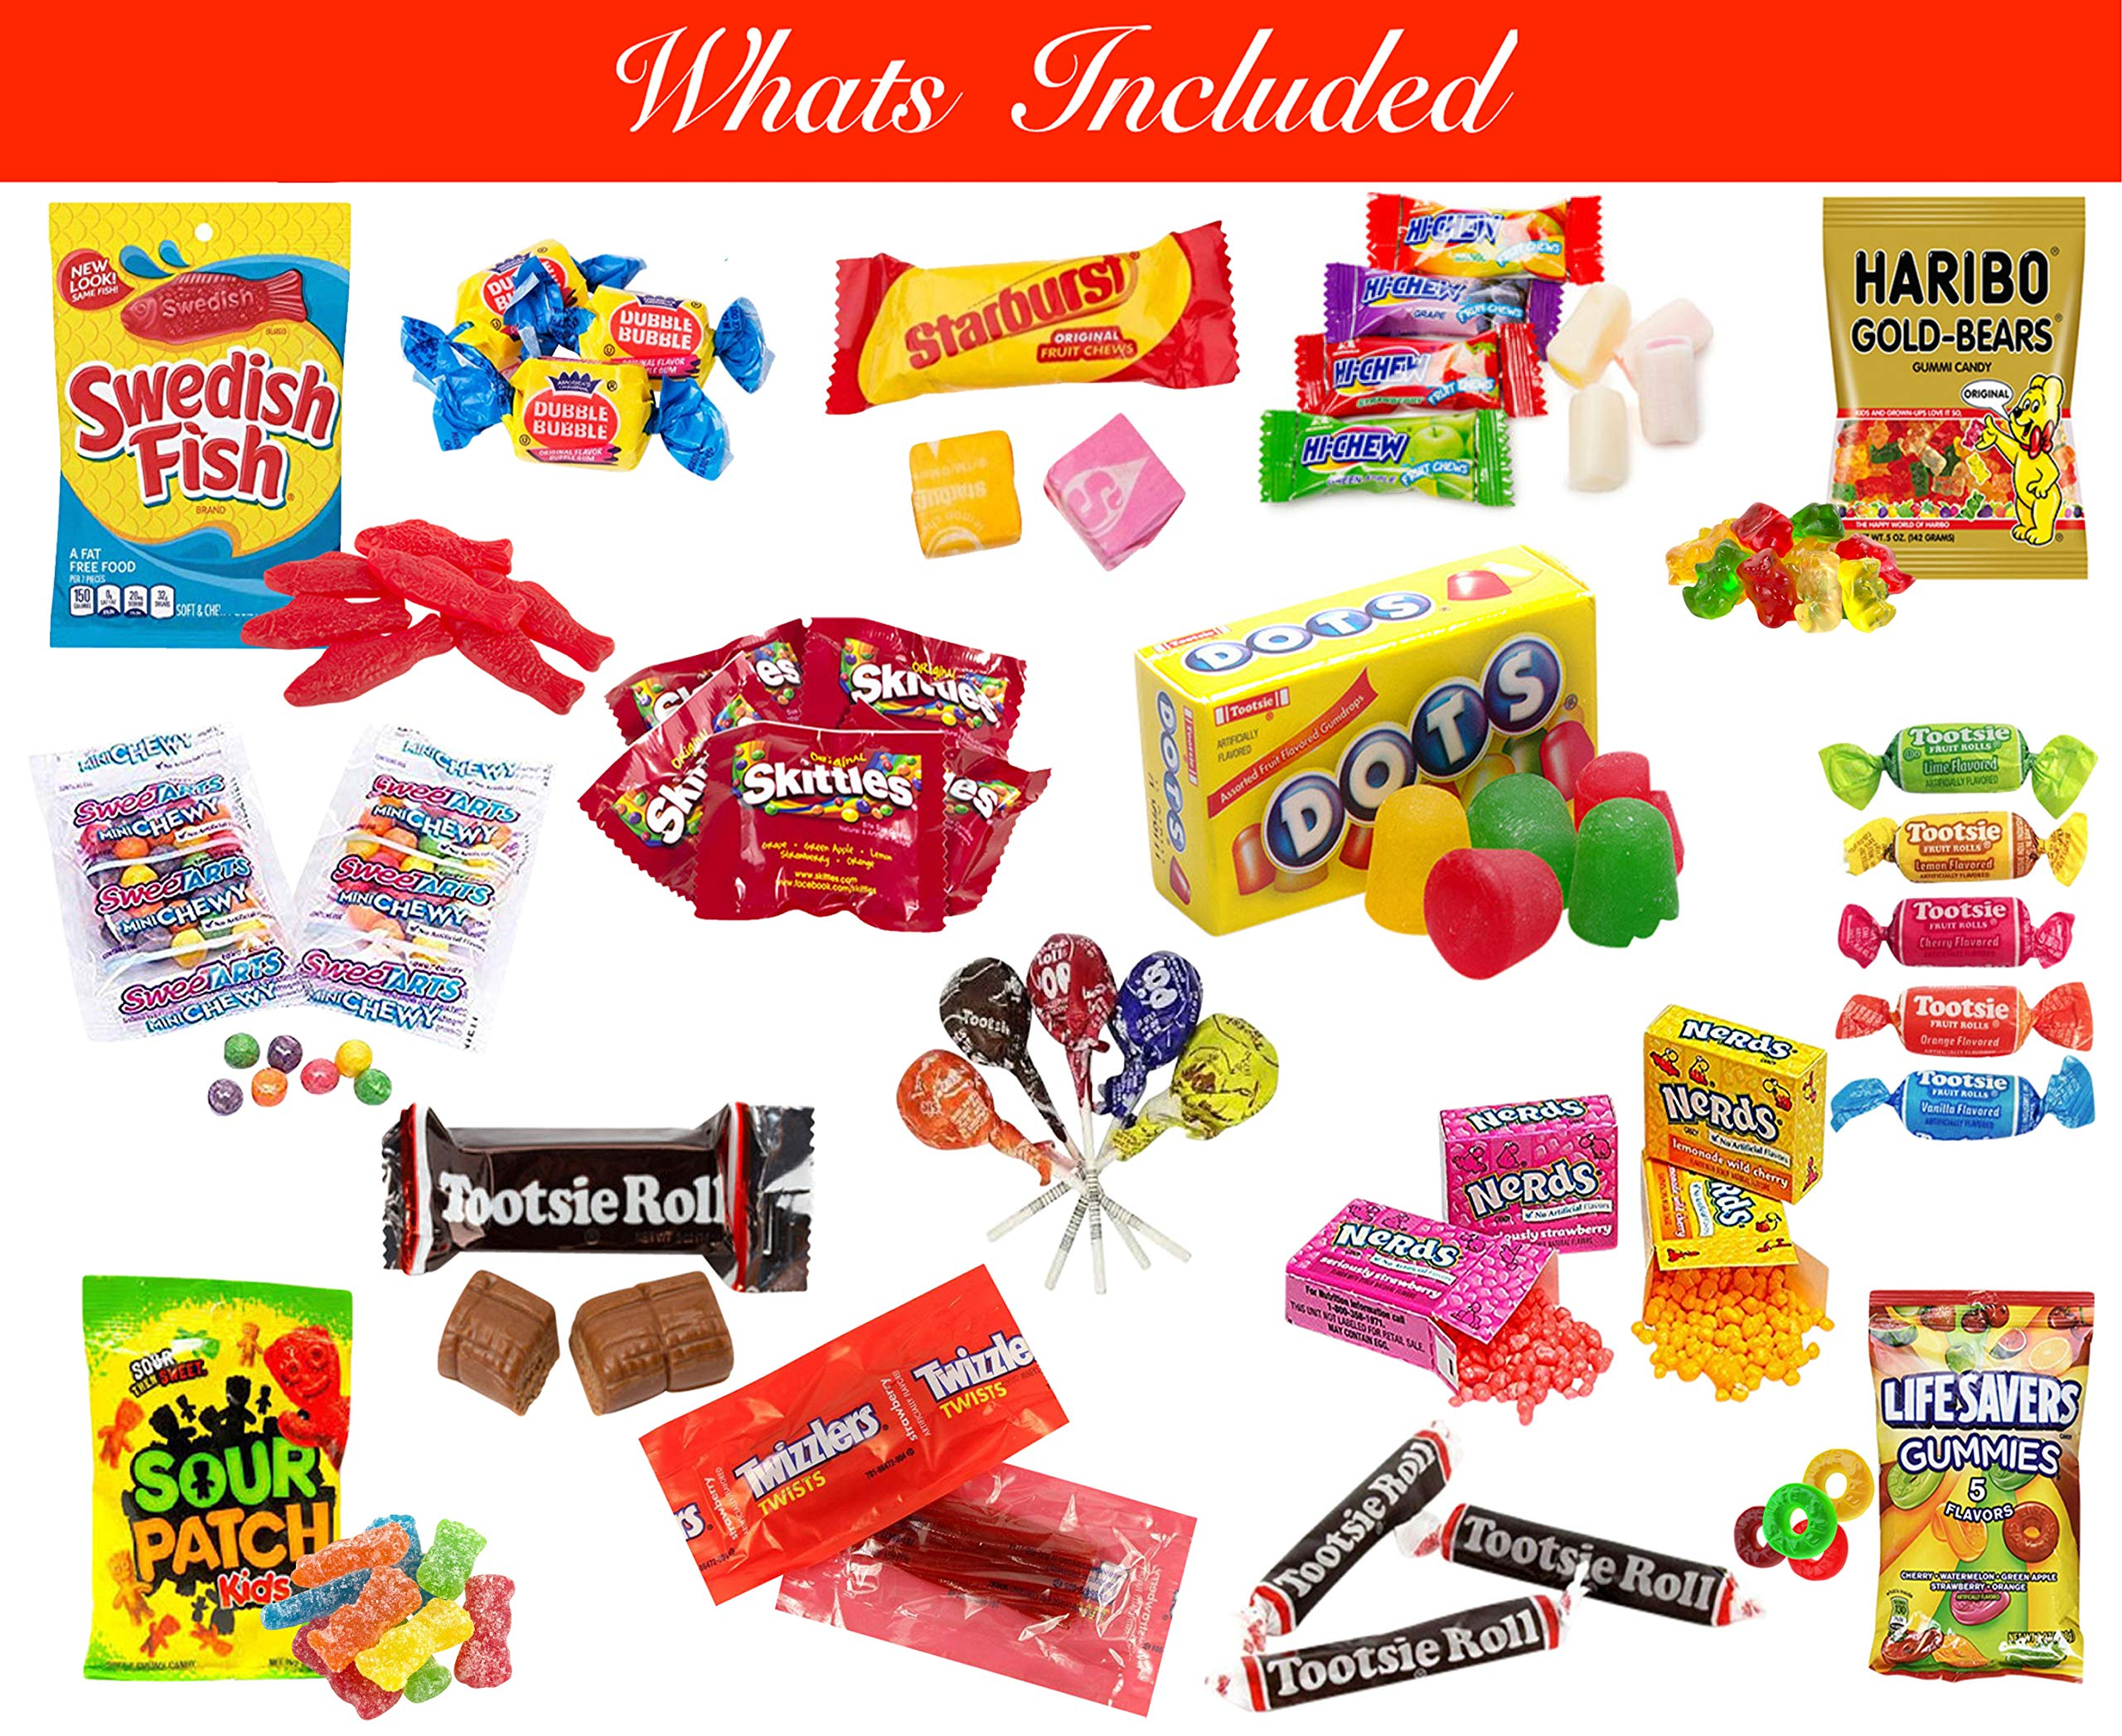 LA Signature Assorted Classic Candy - Huge PARTY MIX Bulk BOX! 11.25 lbs / 180 oz Classic Candies Like Hi-Chew Starburst Haribo Skittles Swedish Fish SweeTarts Sour Patch Tootsie over 430 pieces by LA Signature (Image #4)